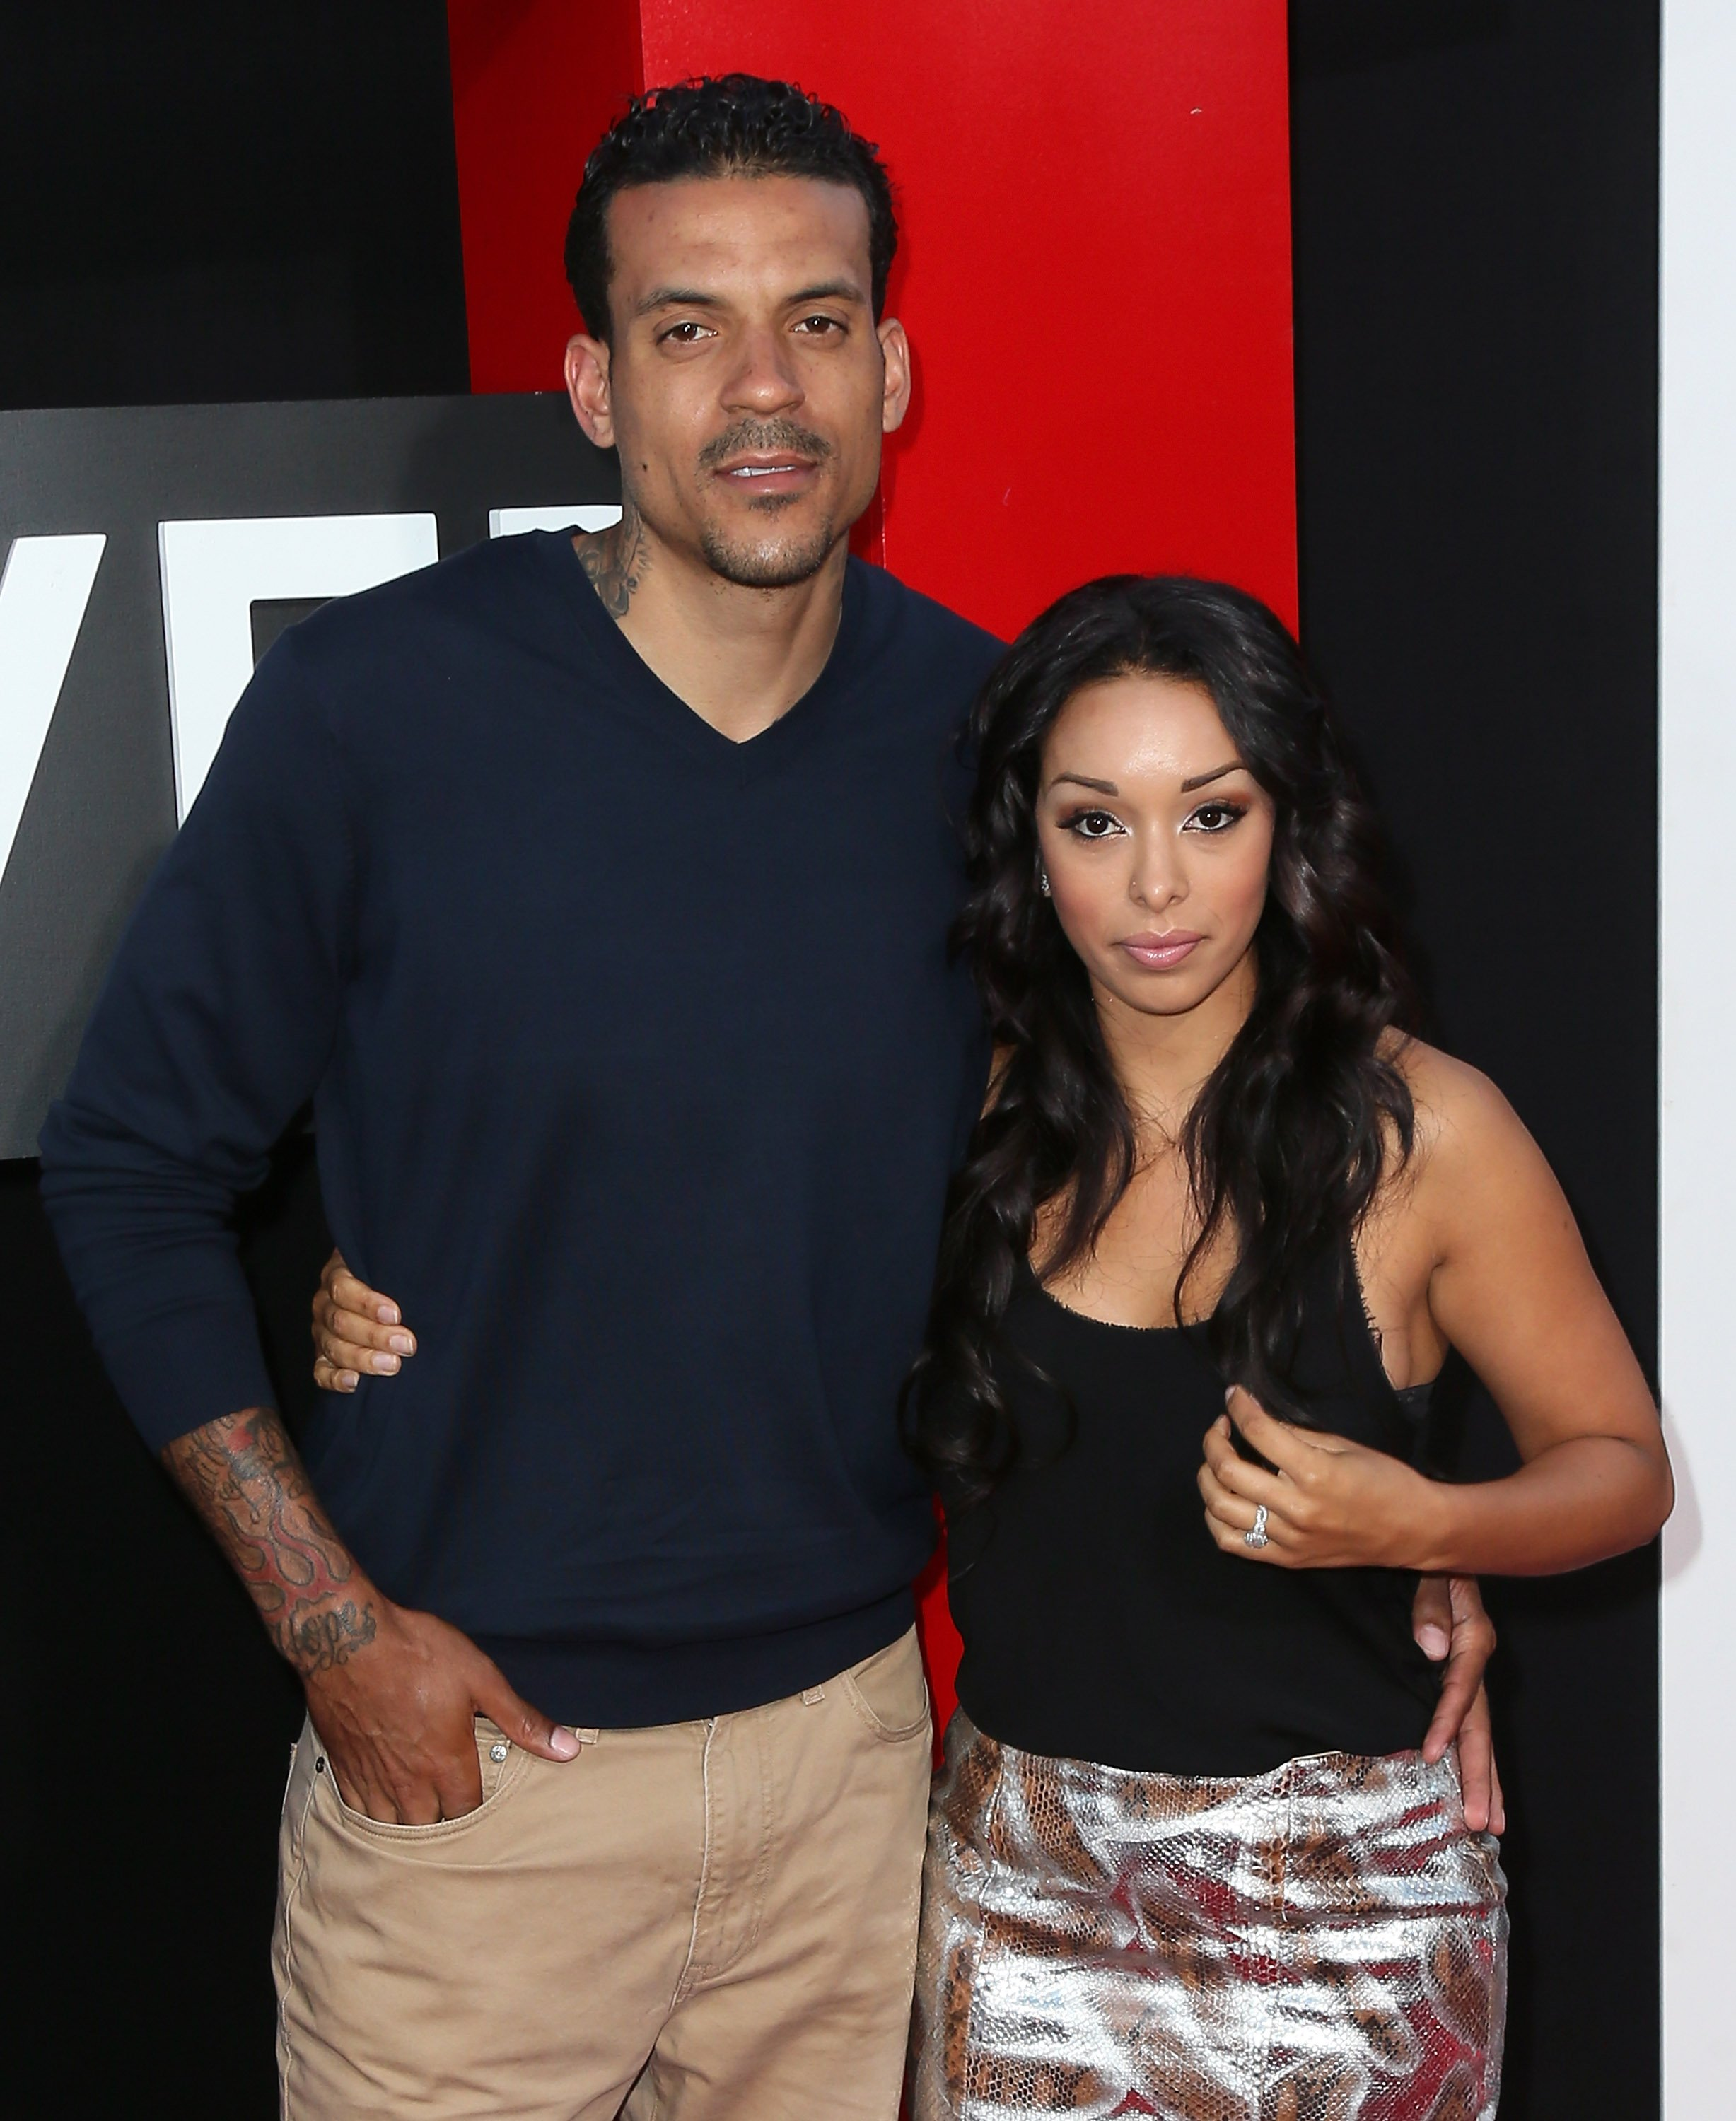 """Matt Barnes and Gloria Govan attend the premiere of Warner Bros. Pictures' """"Hangover Part III"""" on May 20, 2013 in Westwood, California.  